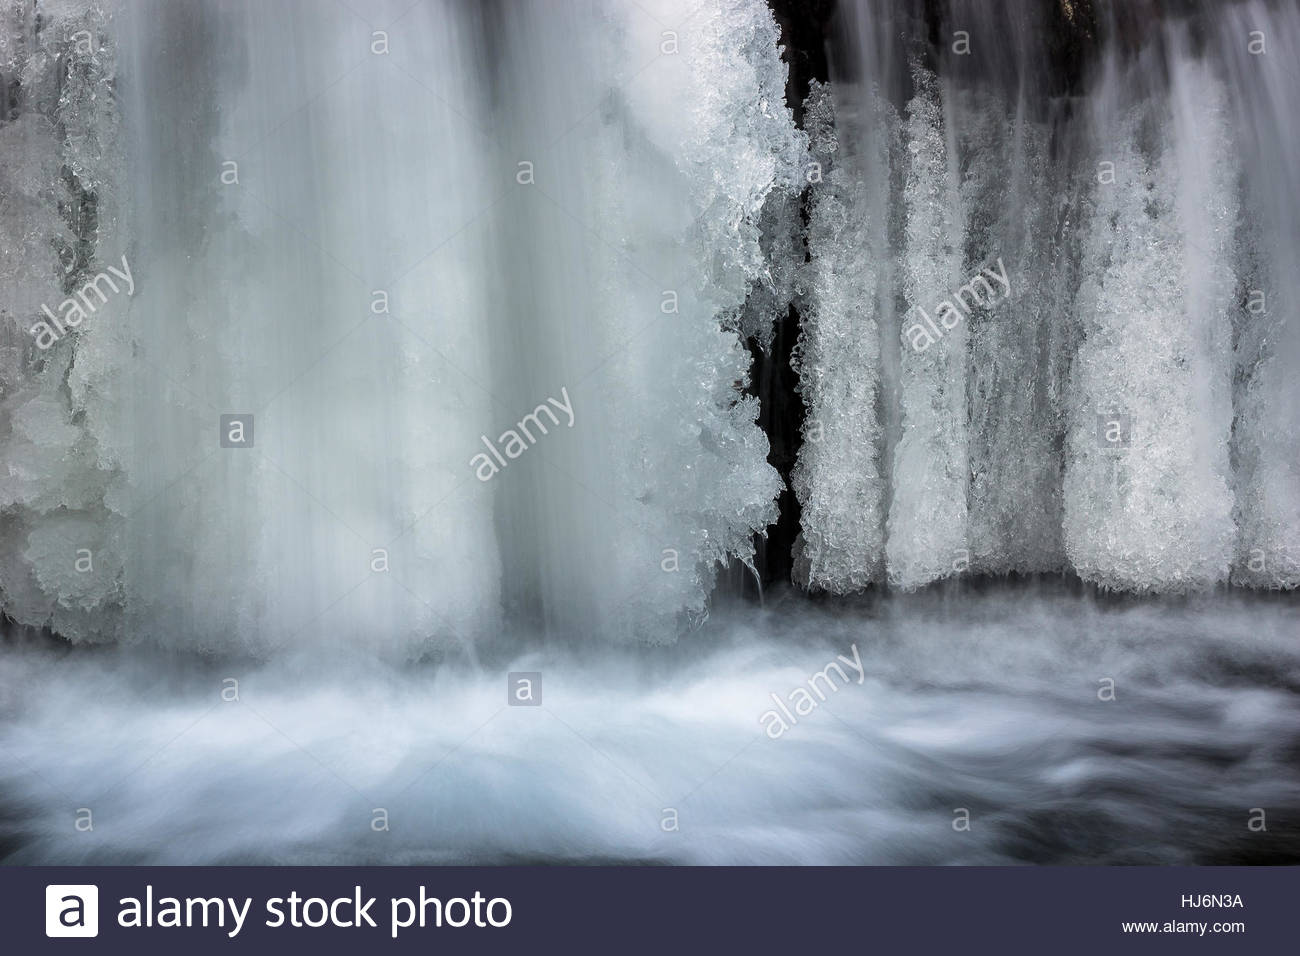 cold winter : ice frozen river banks and beautiful icicles Stock Photo